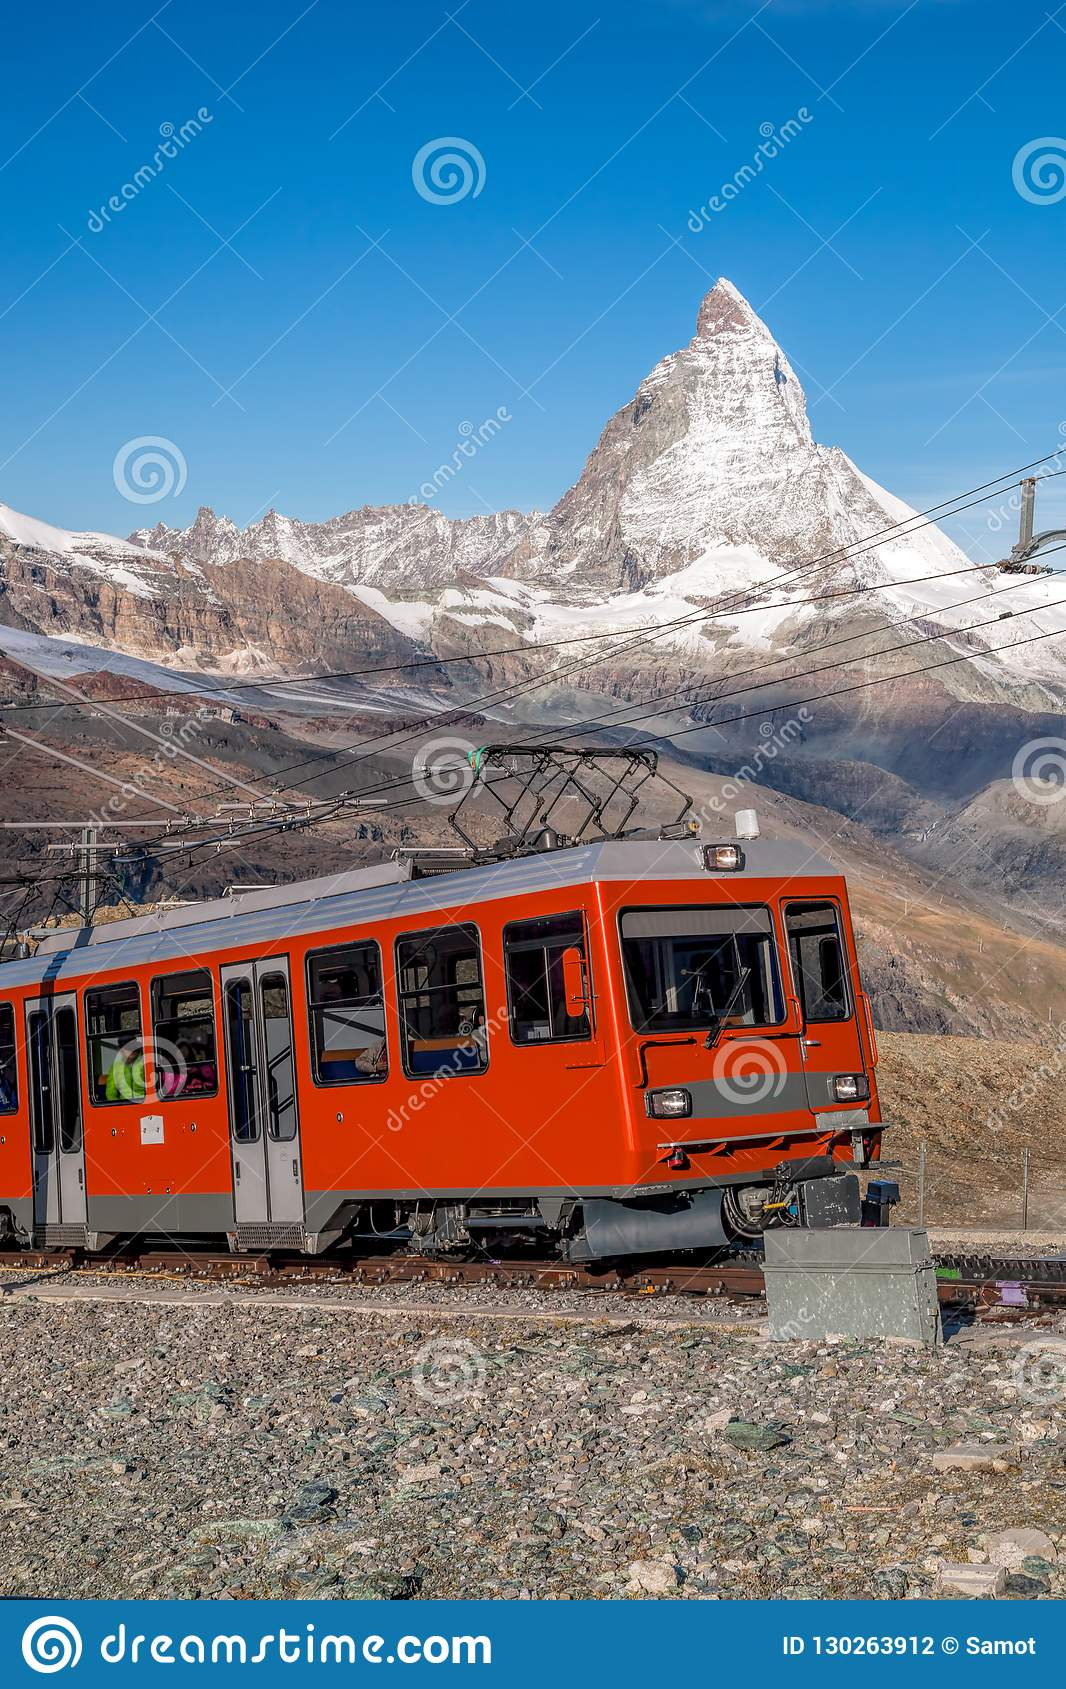 Matterhorn peak with Gornergrat train in Zermatt area, Switzerland